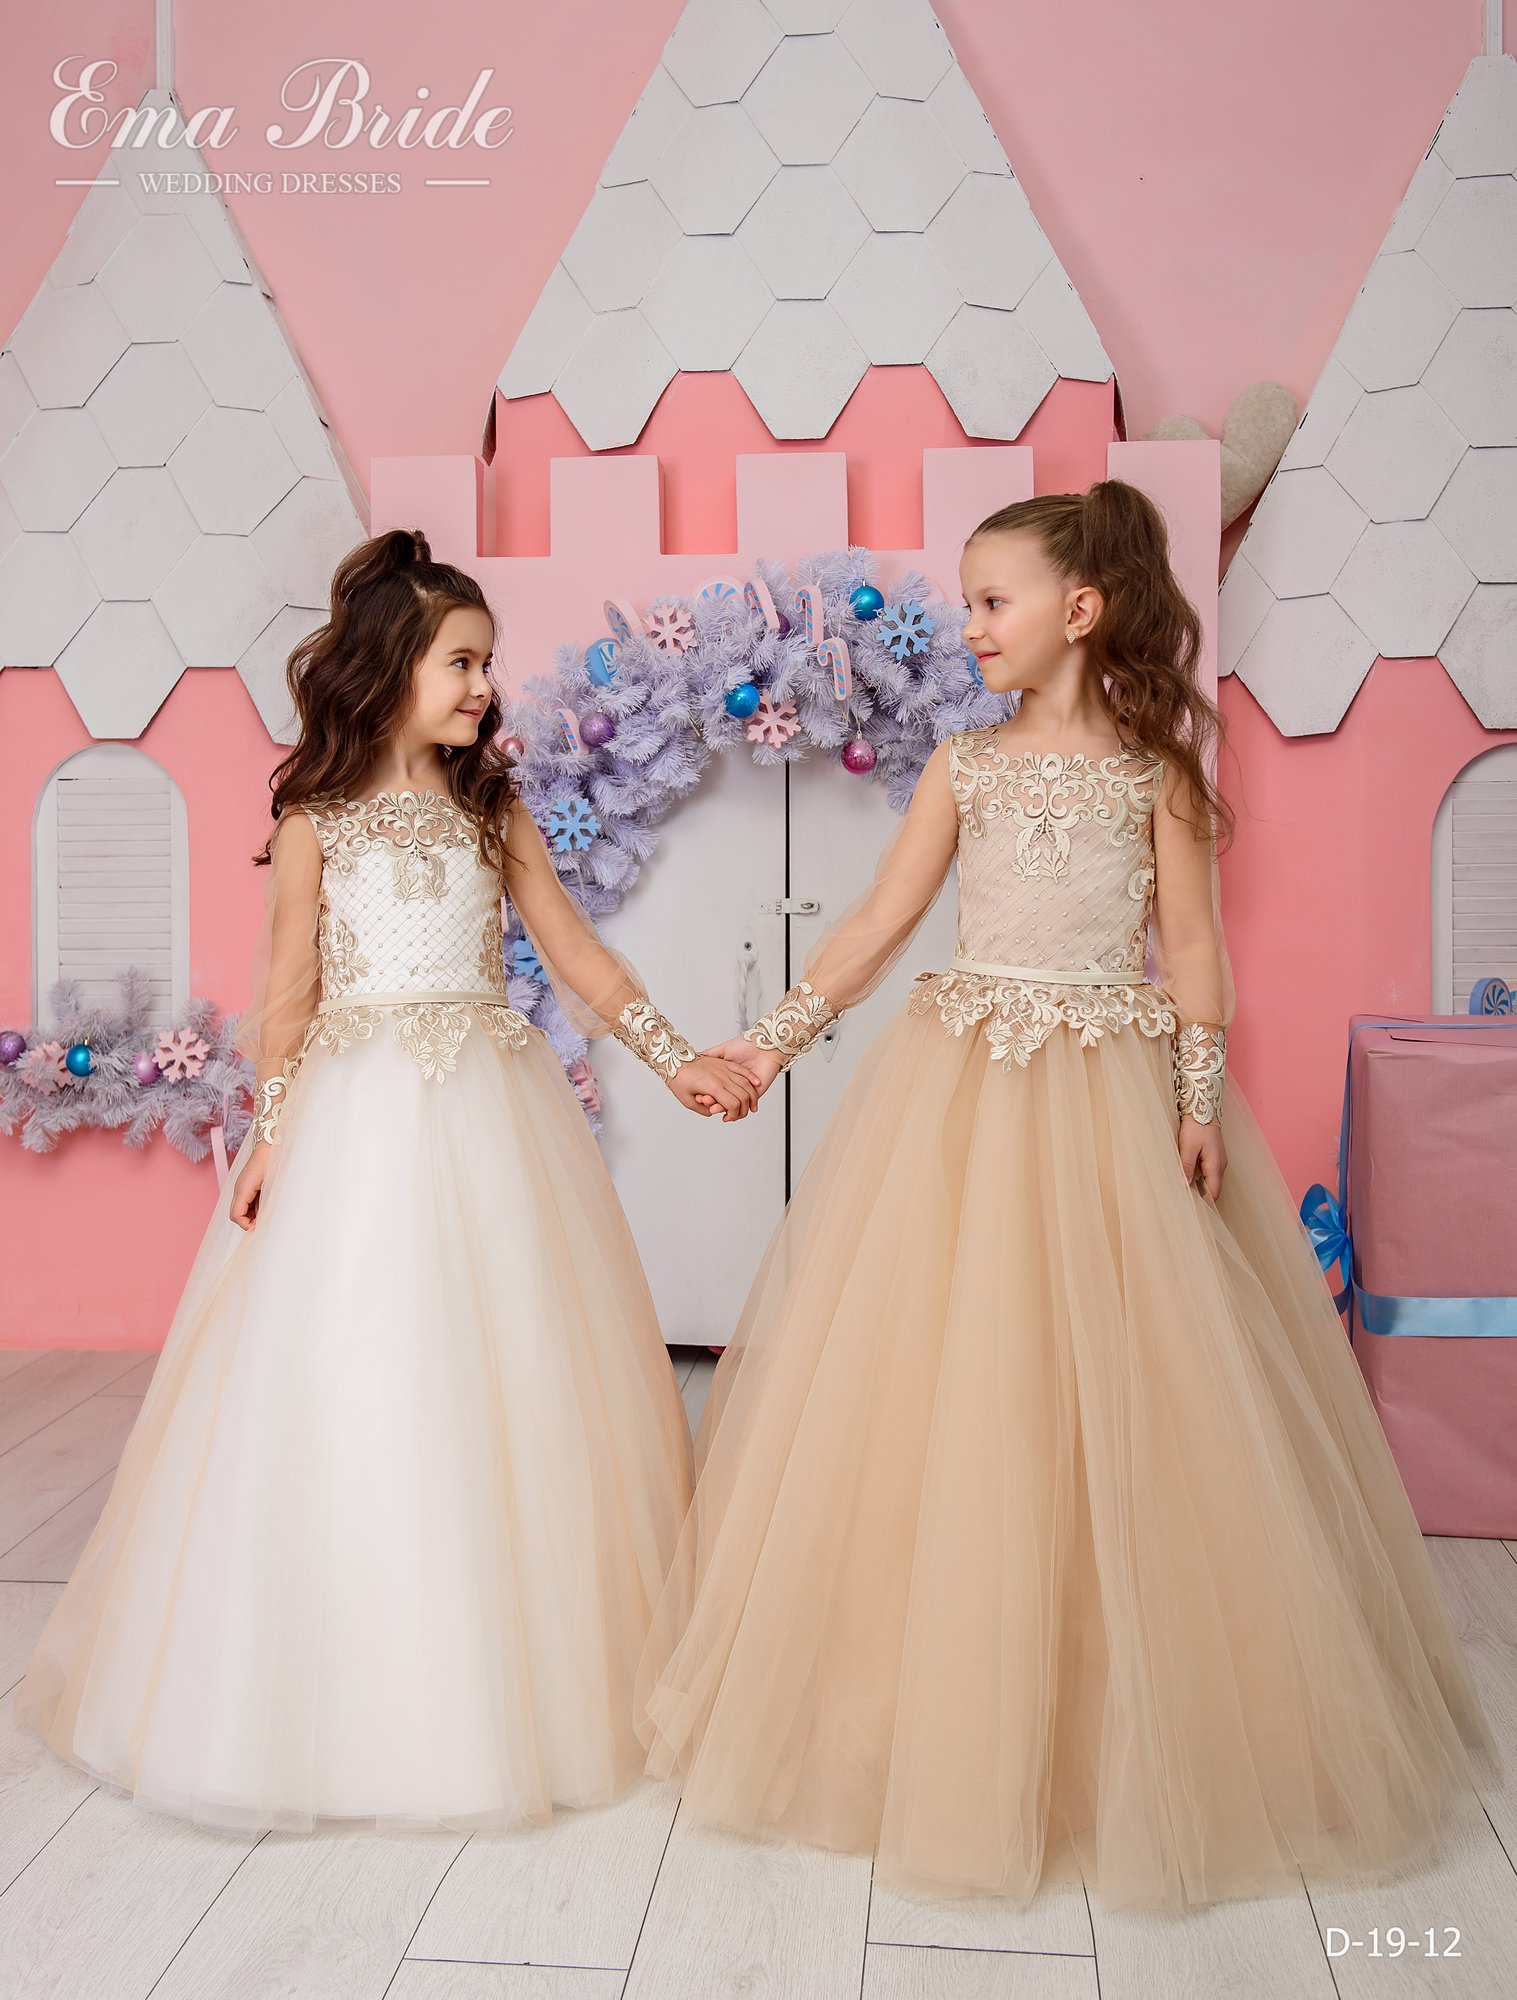 Children's dress by EmaBride D-19-12 2019-1